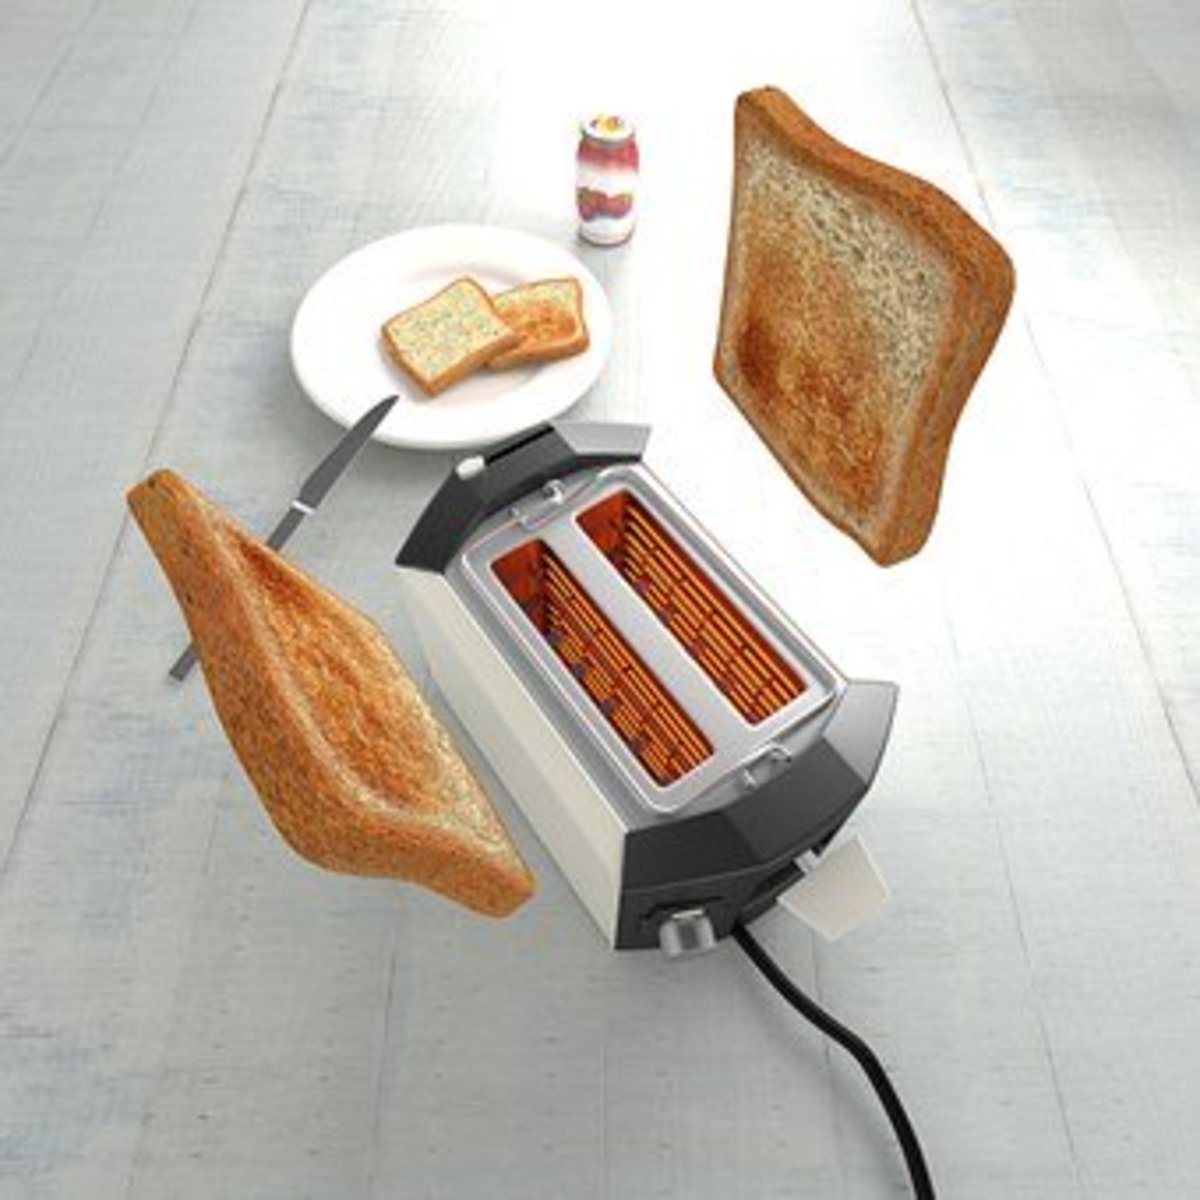 Why if no-one likes burnt toast, do toasters come with a setting that always burns the bread to a frazzle?